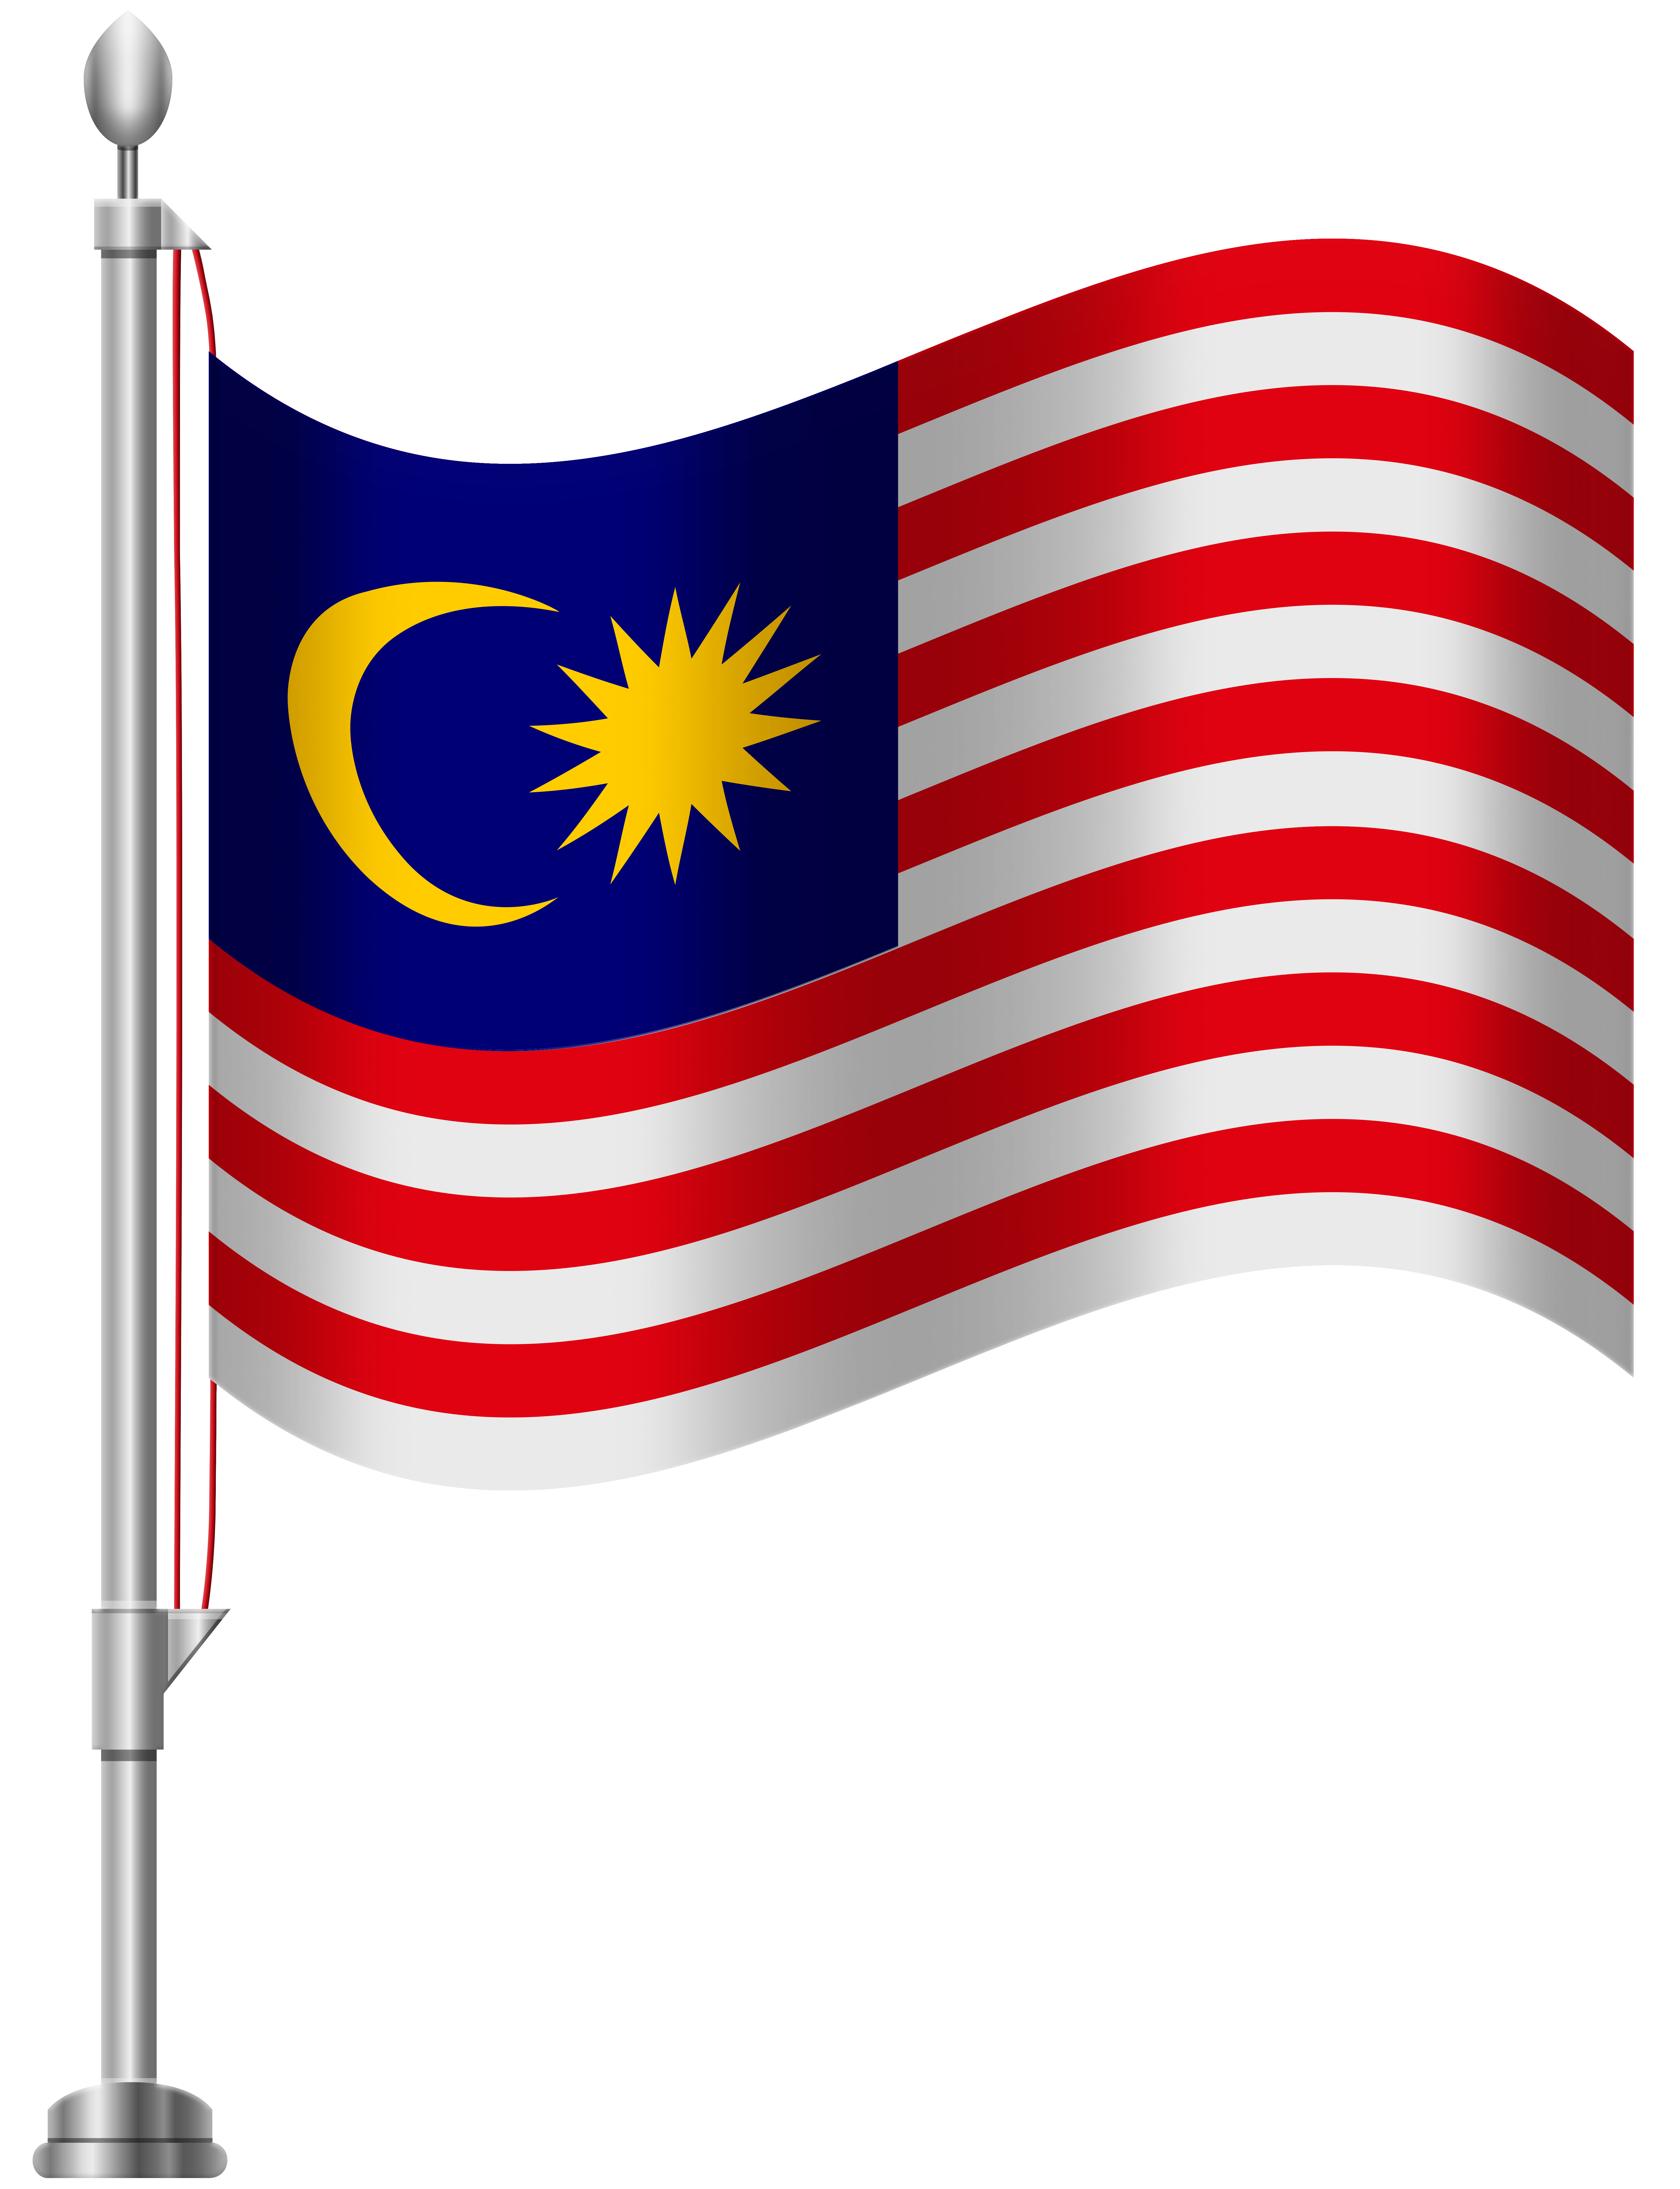 Usa clipart grey. Malaysia flag png clip